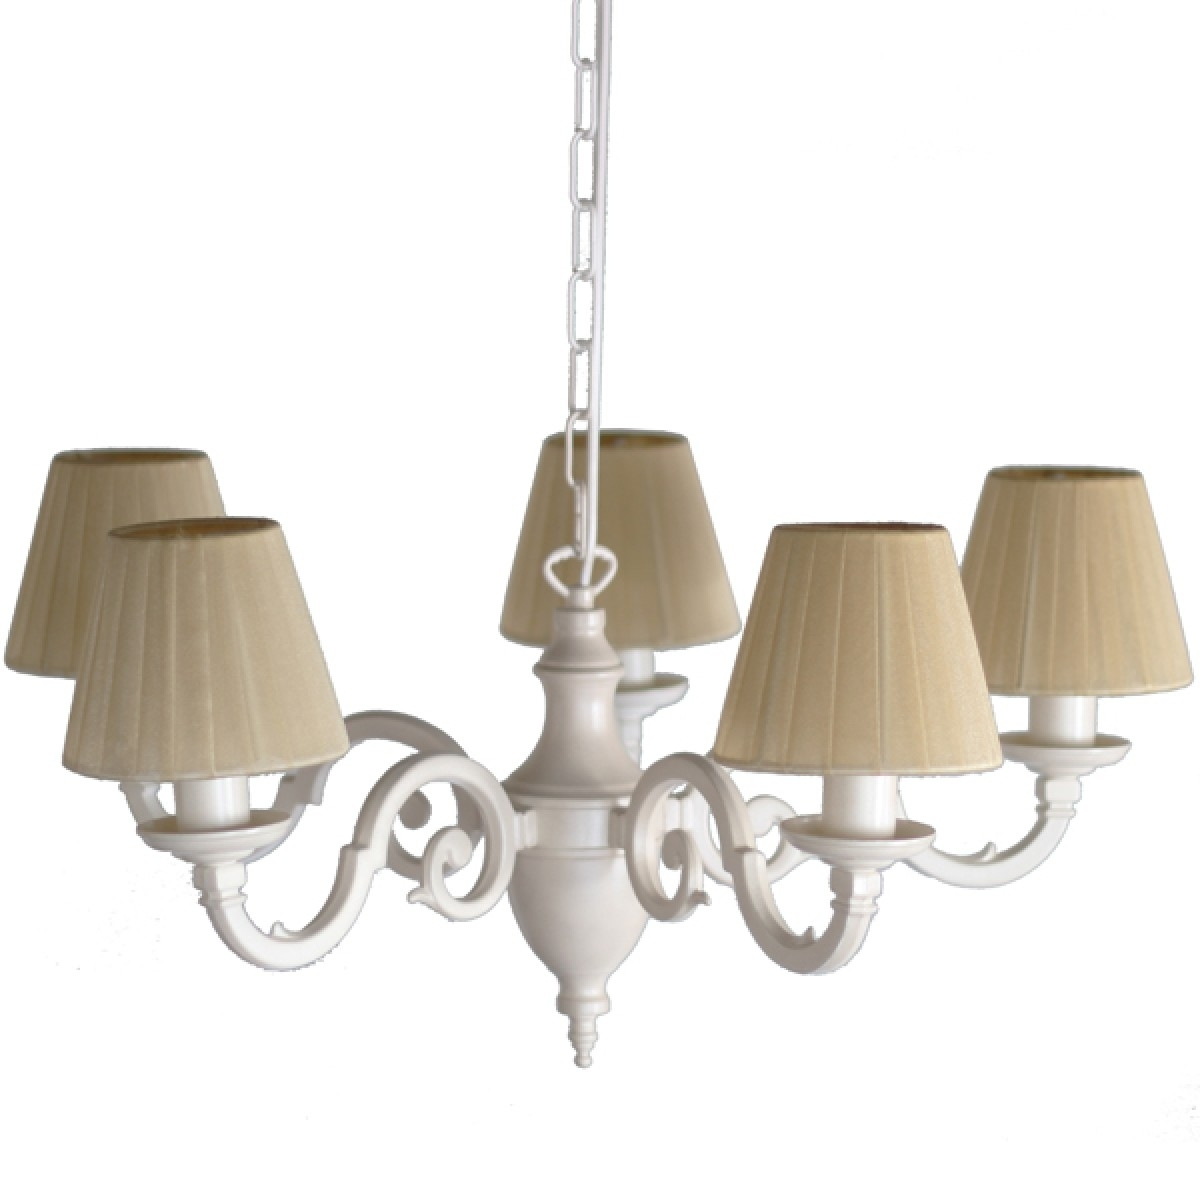 Light Fitting Chandeliers With 2018 Bedroom Light Fitting Chandelier (View 12 of 15)